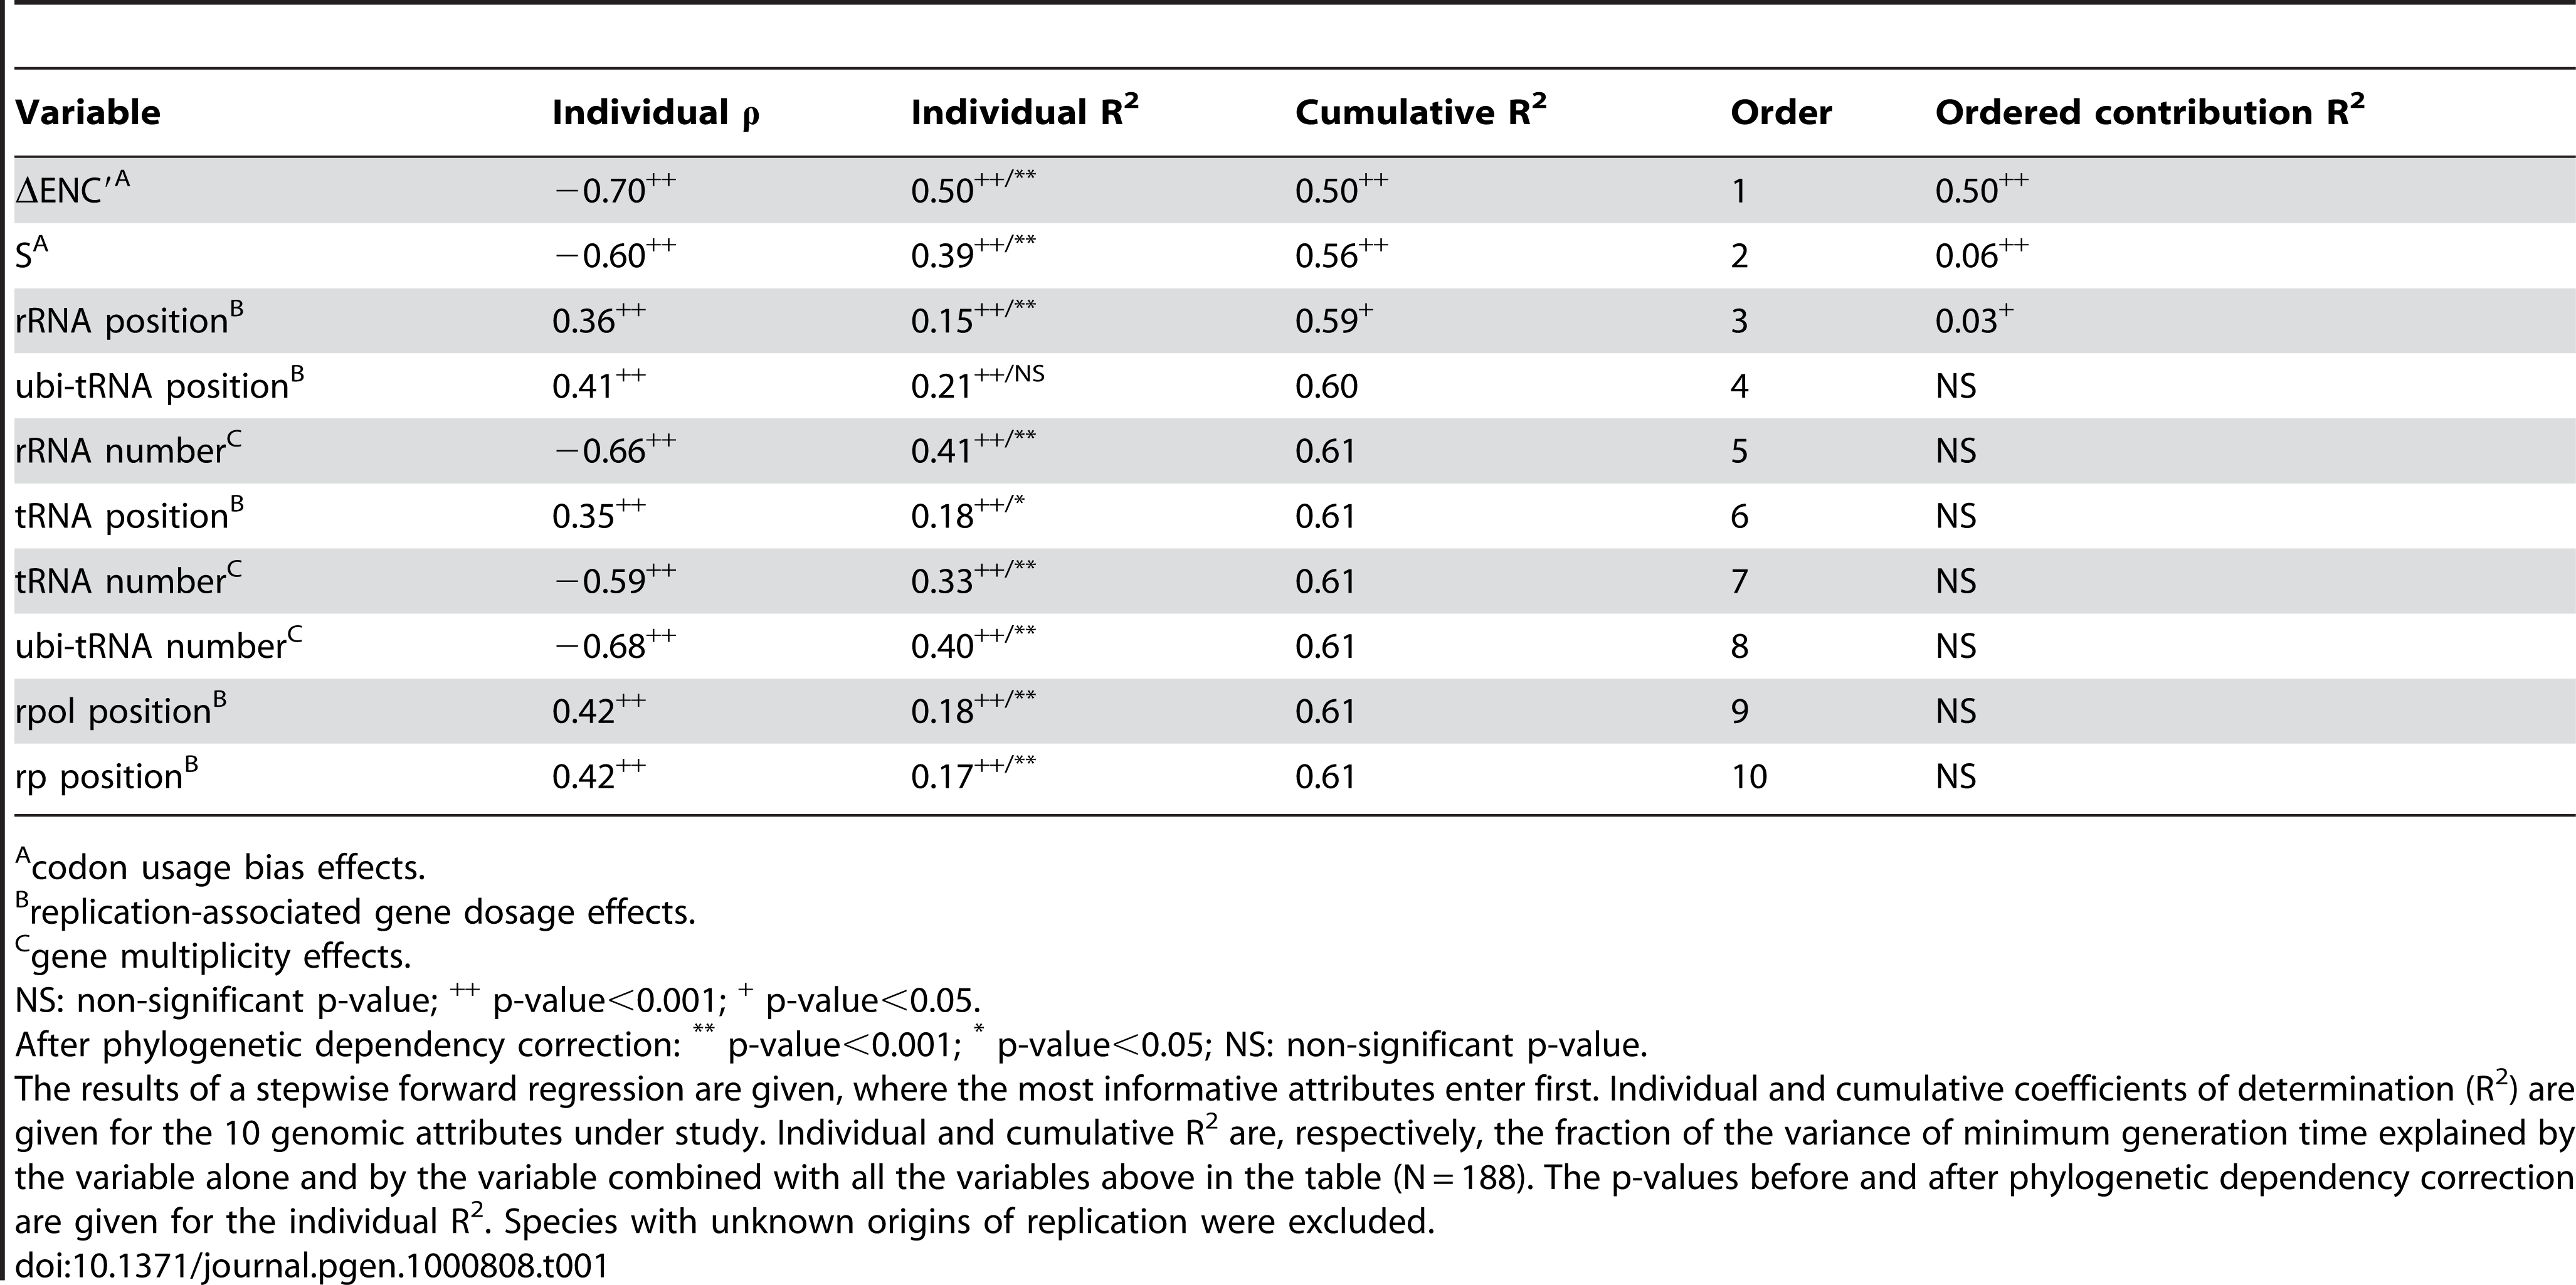 Most informative attributes for the prediction of minimum generation time.